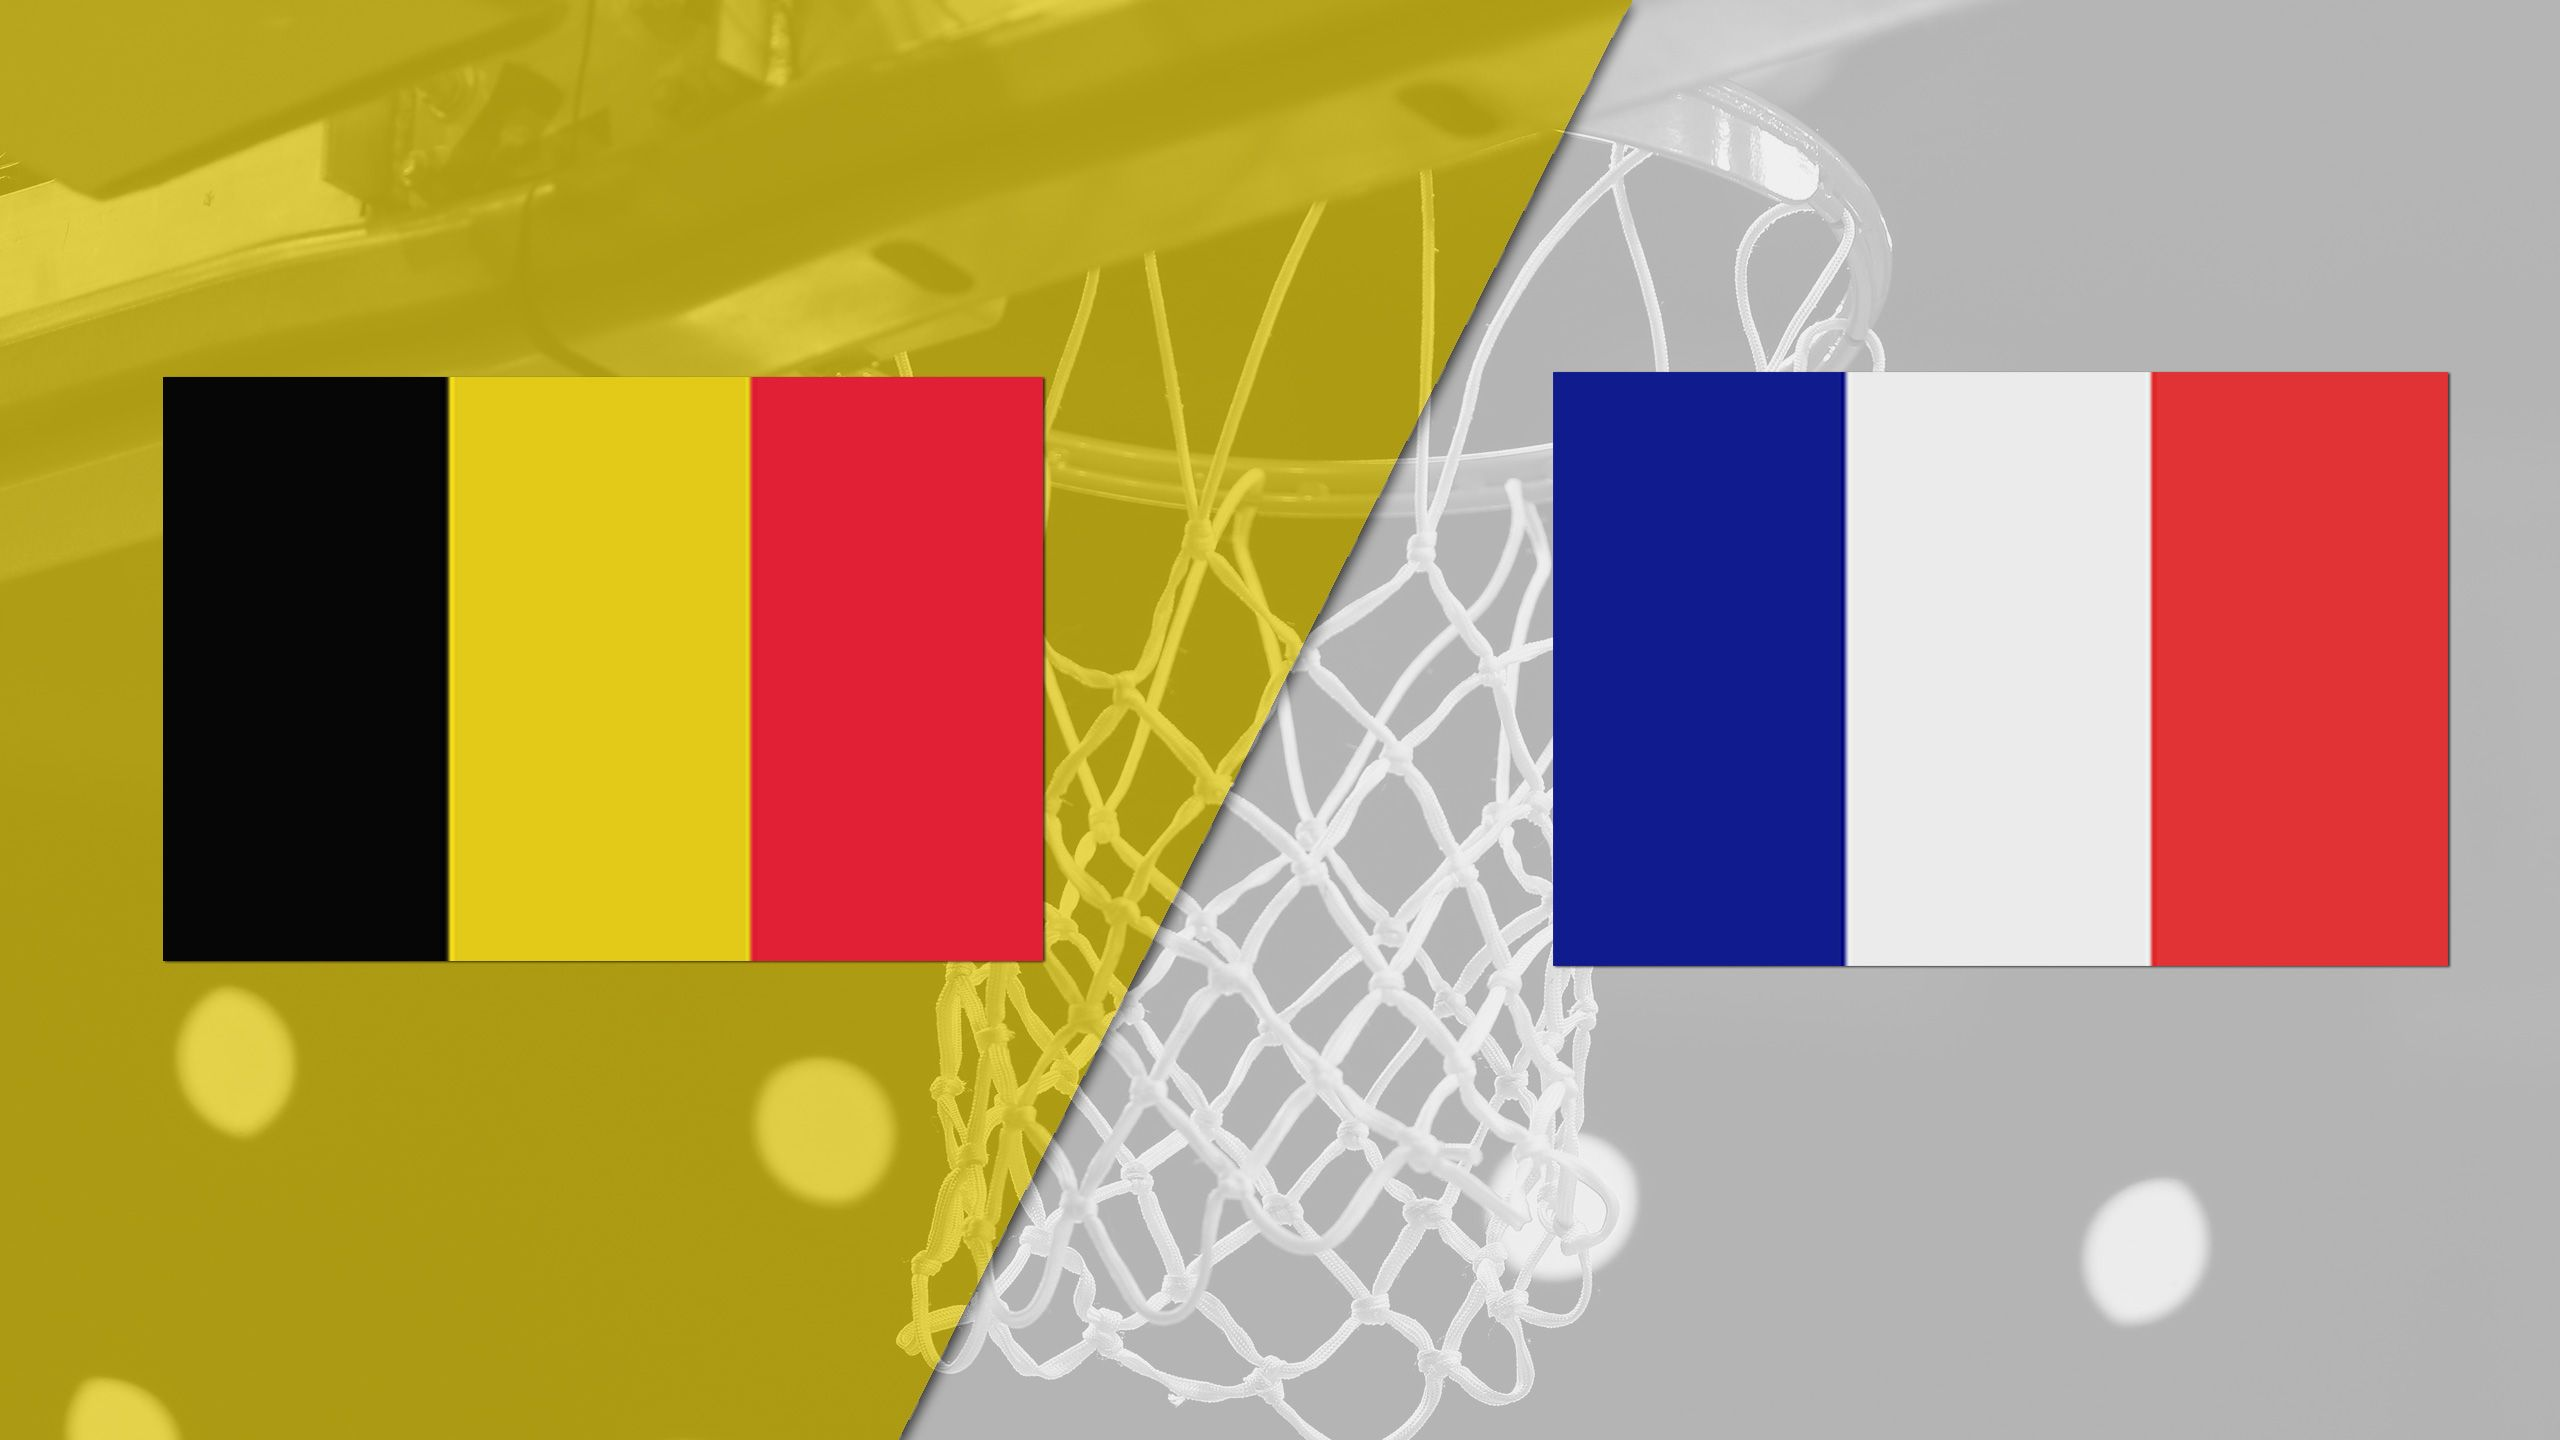 Belgium vs. France (FIBA World Cup 2019 Qualifier)